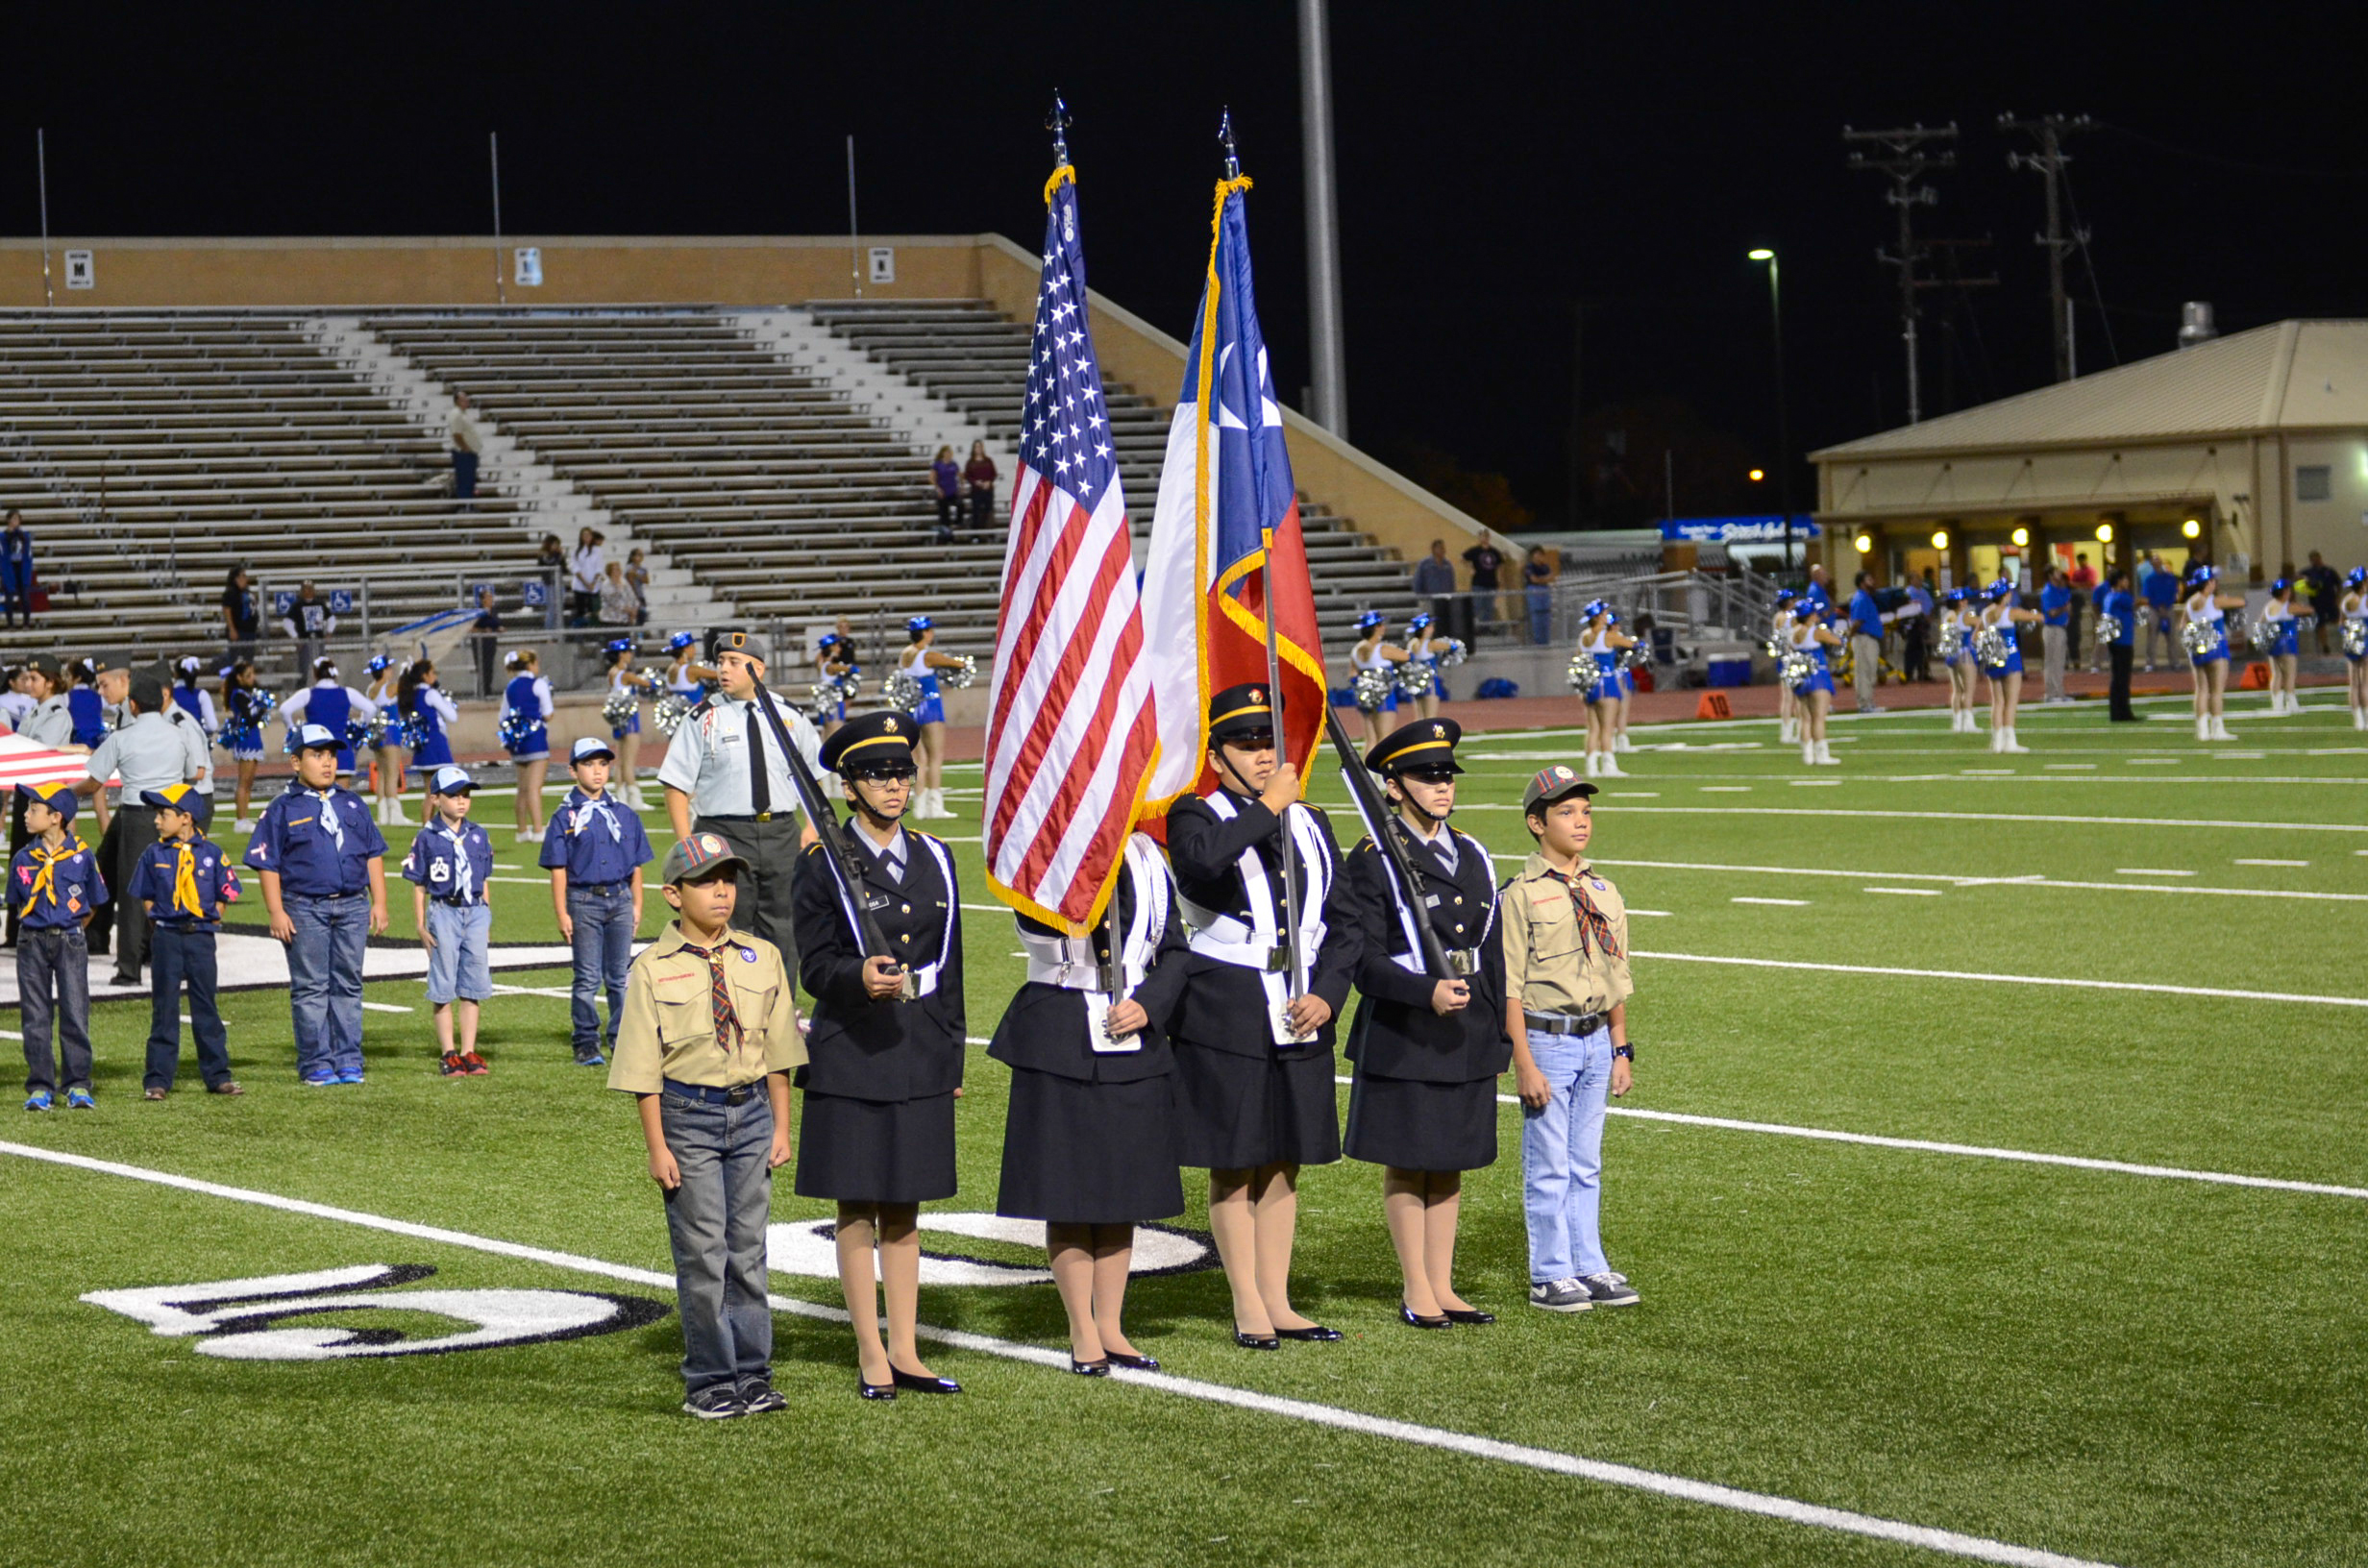 HCISD prepares to honor men and women in the armed forces during Veterans Day ceremonies